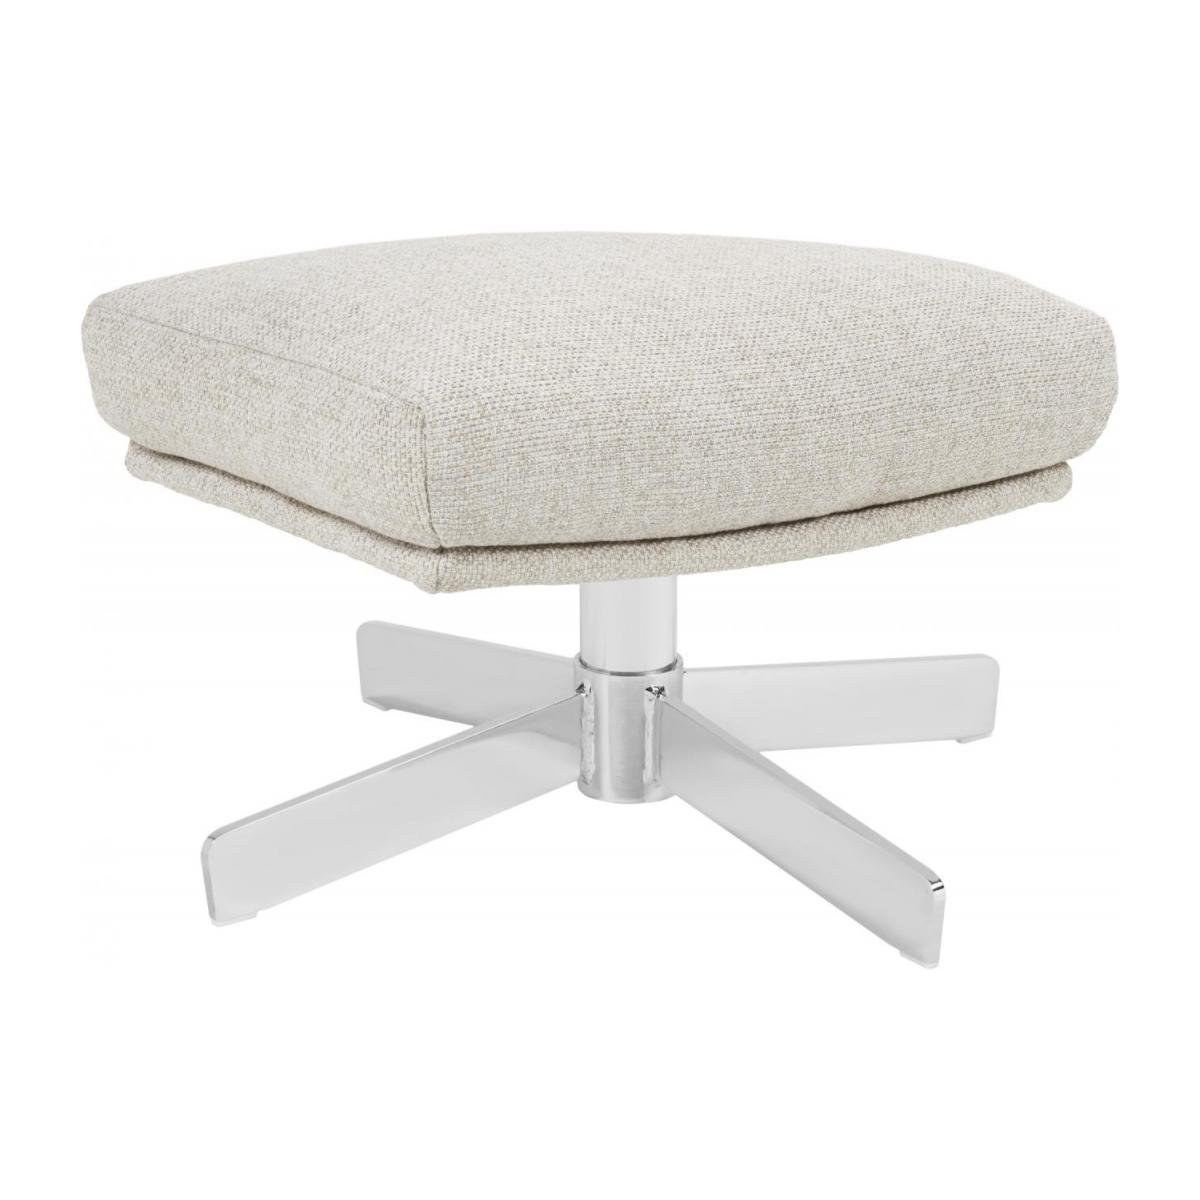 Footstool in Lecce fabric, nature with metal cross leg n°1